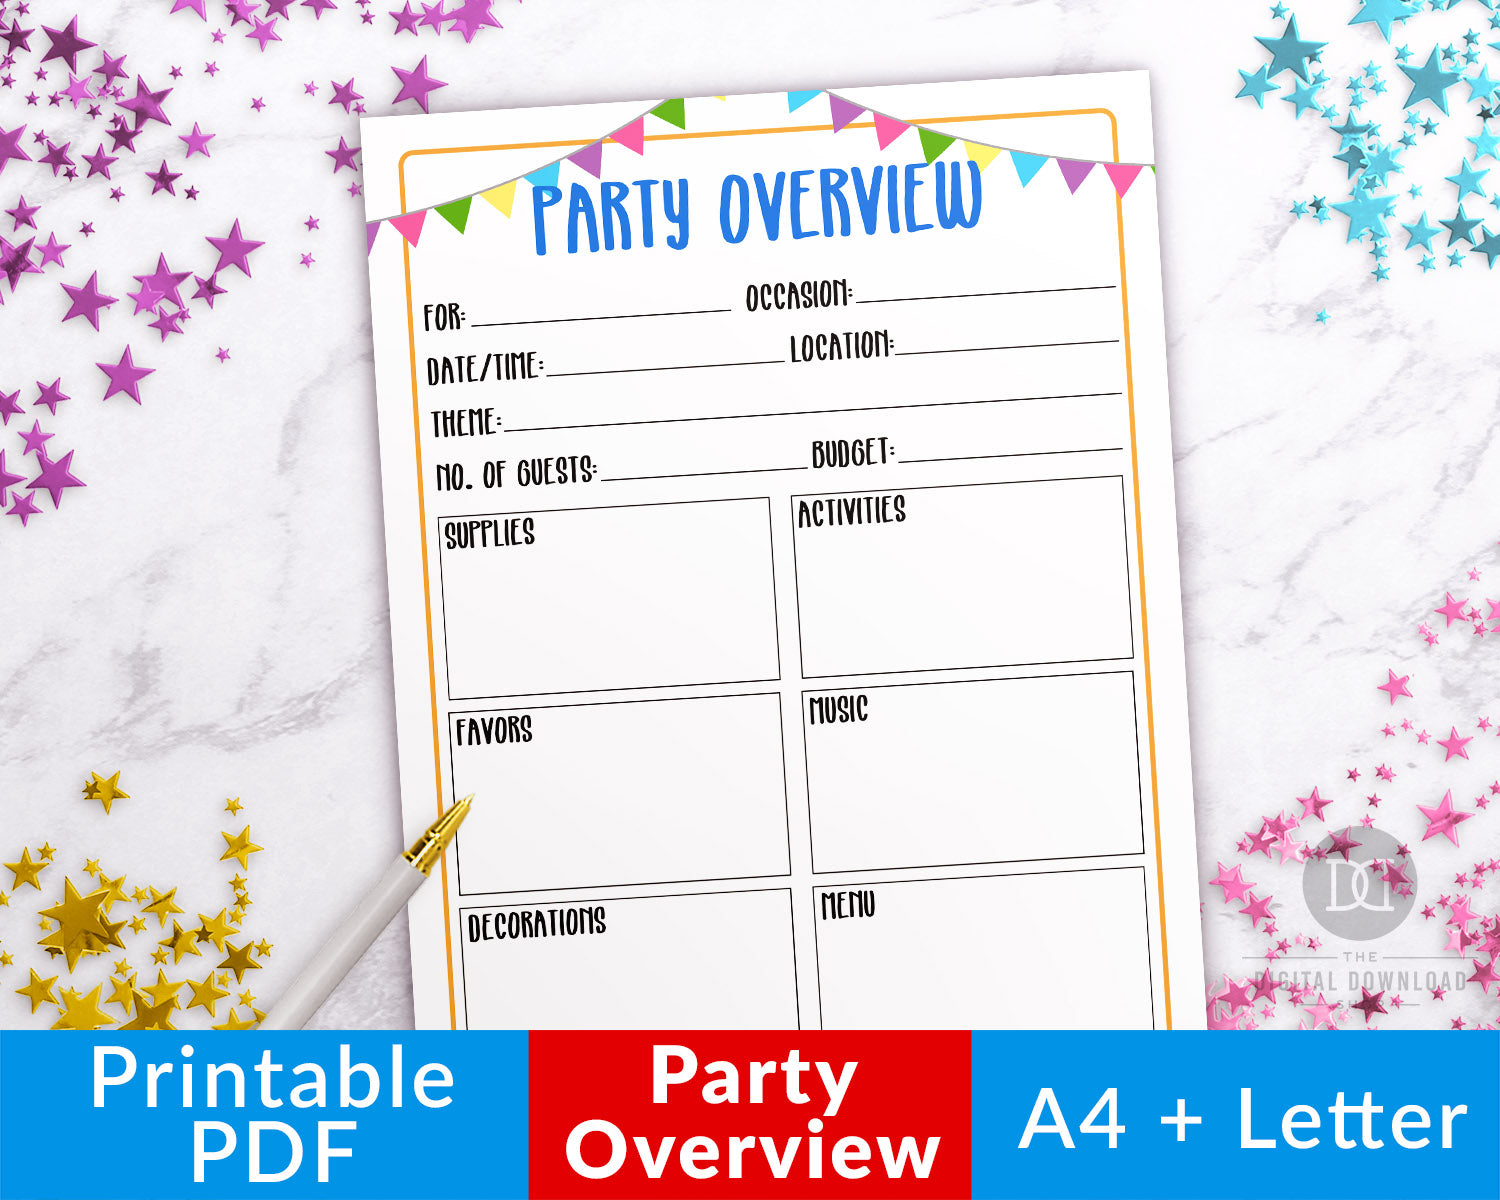 Party planner printable overview, perfect for birthday party planning, anniversary party planning, graduation party planning, and more!